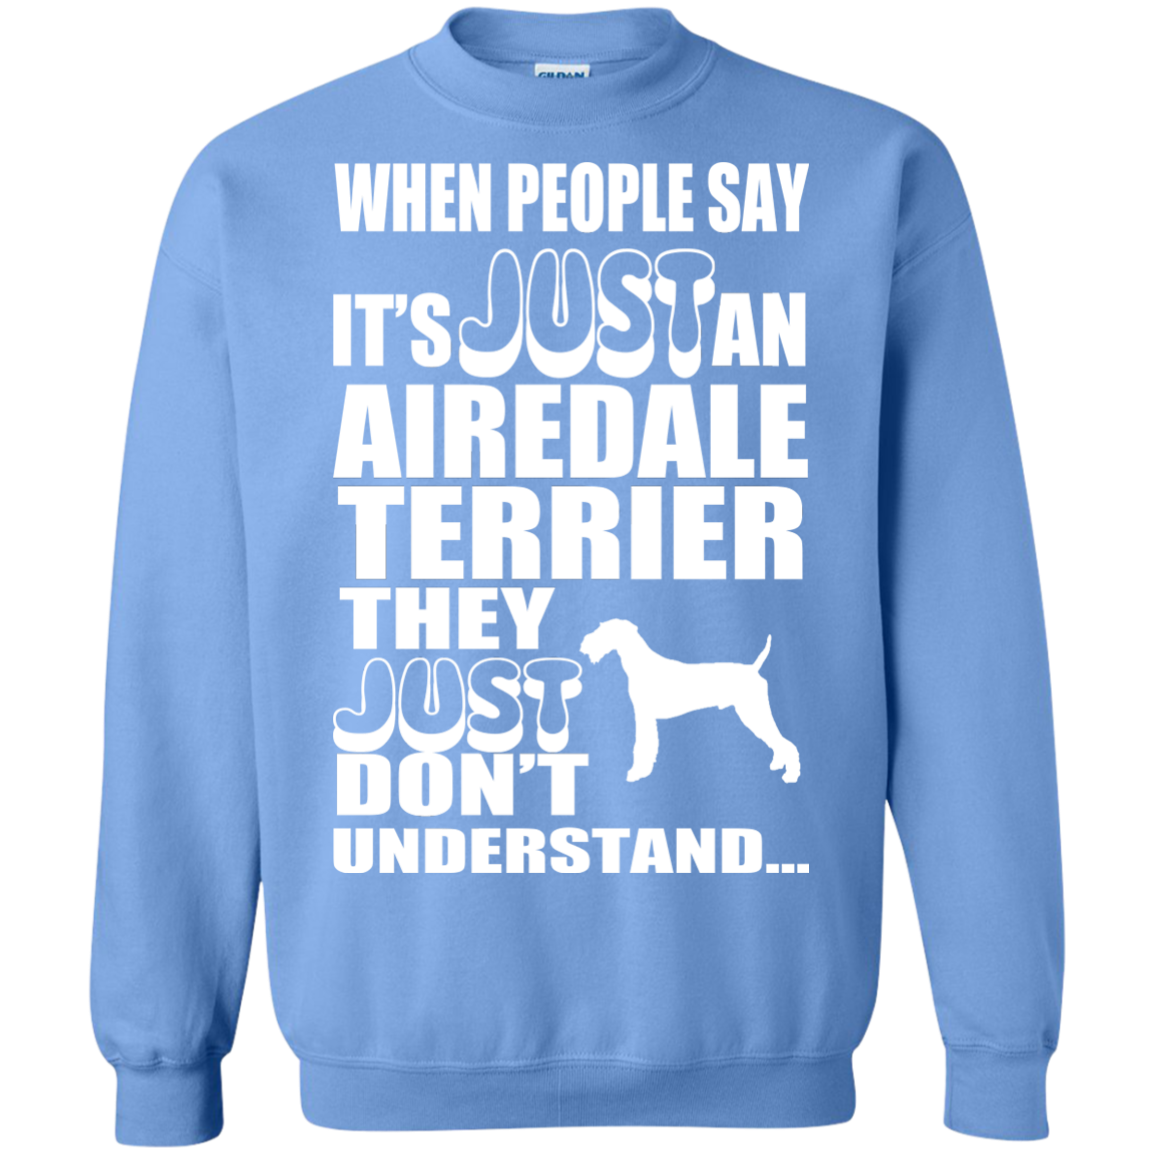 When People Say Just An Airedale Terrier They Just Dont Understand Sweatshirts